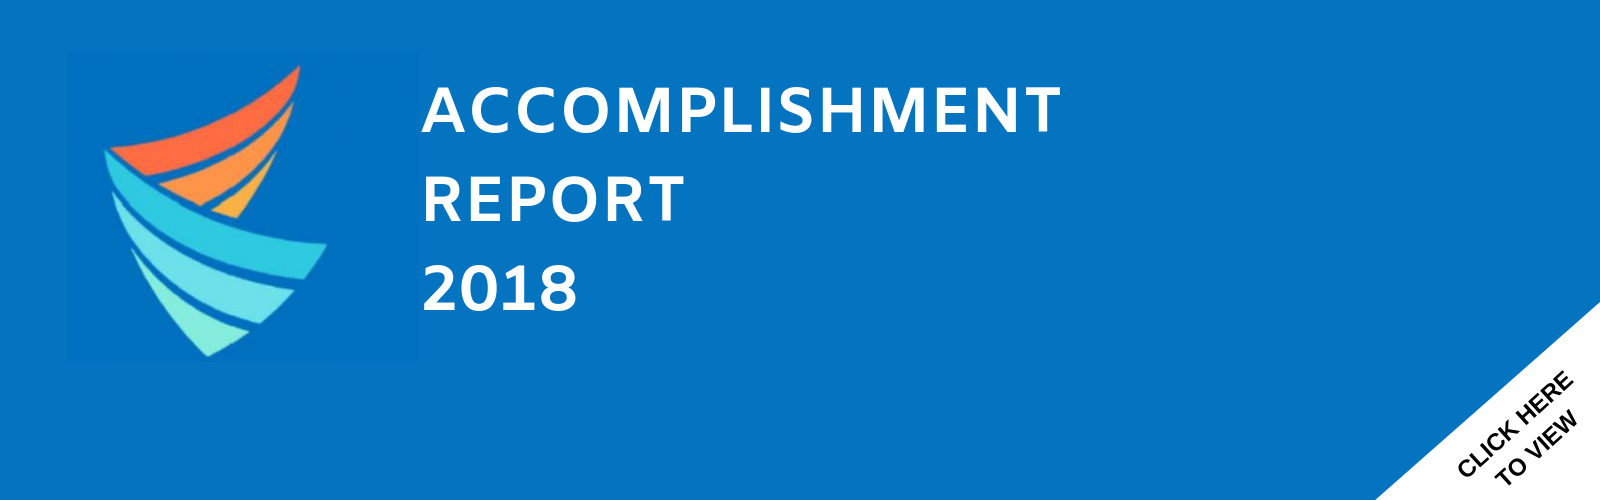 ACCOMPLISHMENT REPORT 2018 (1)